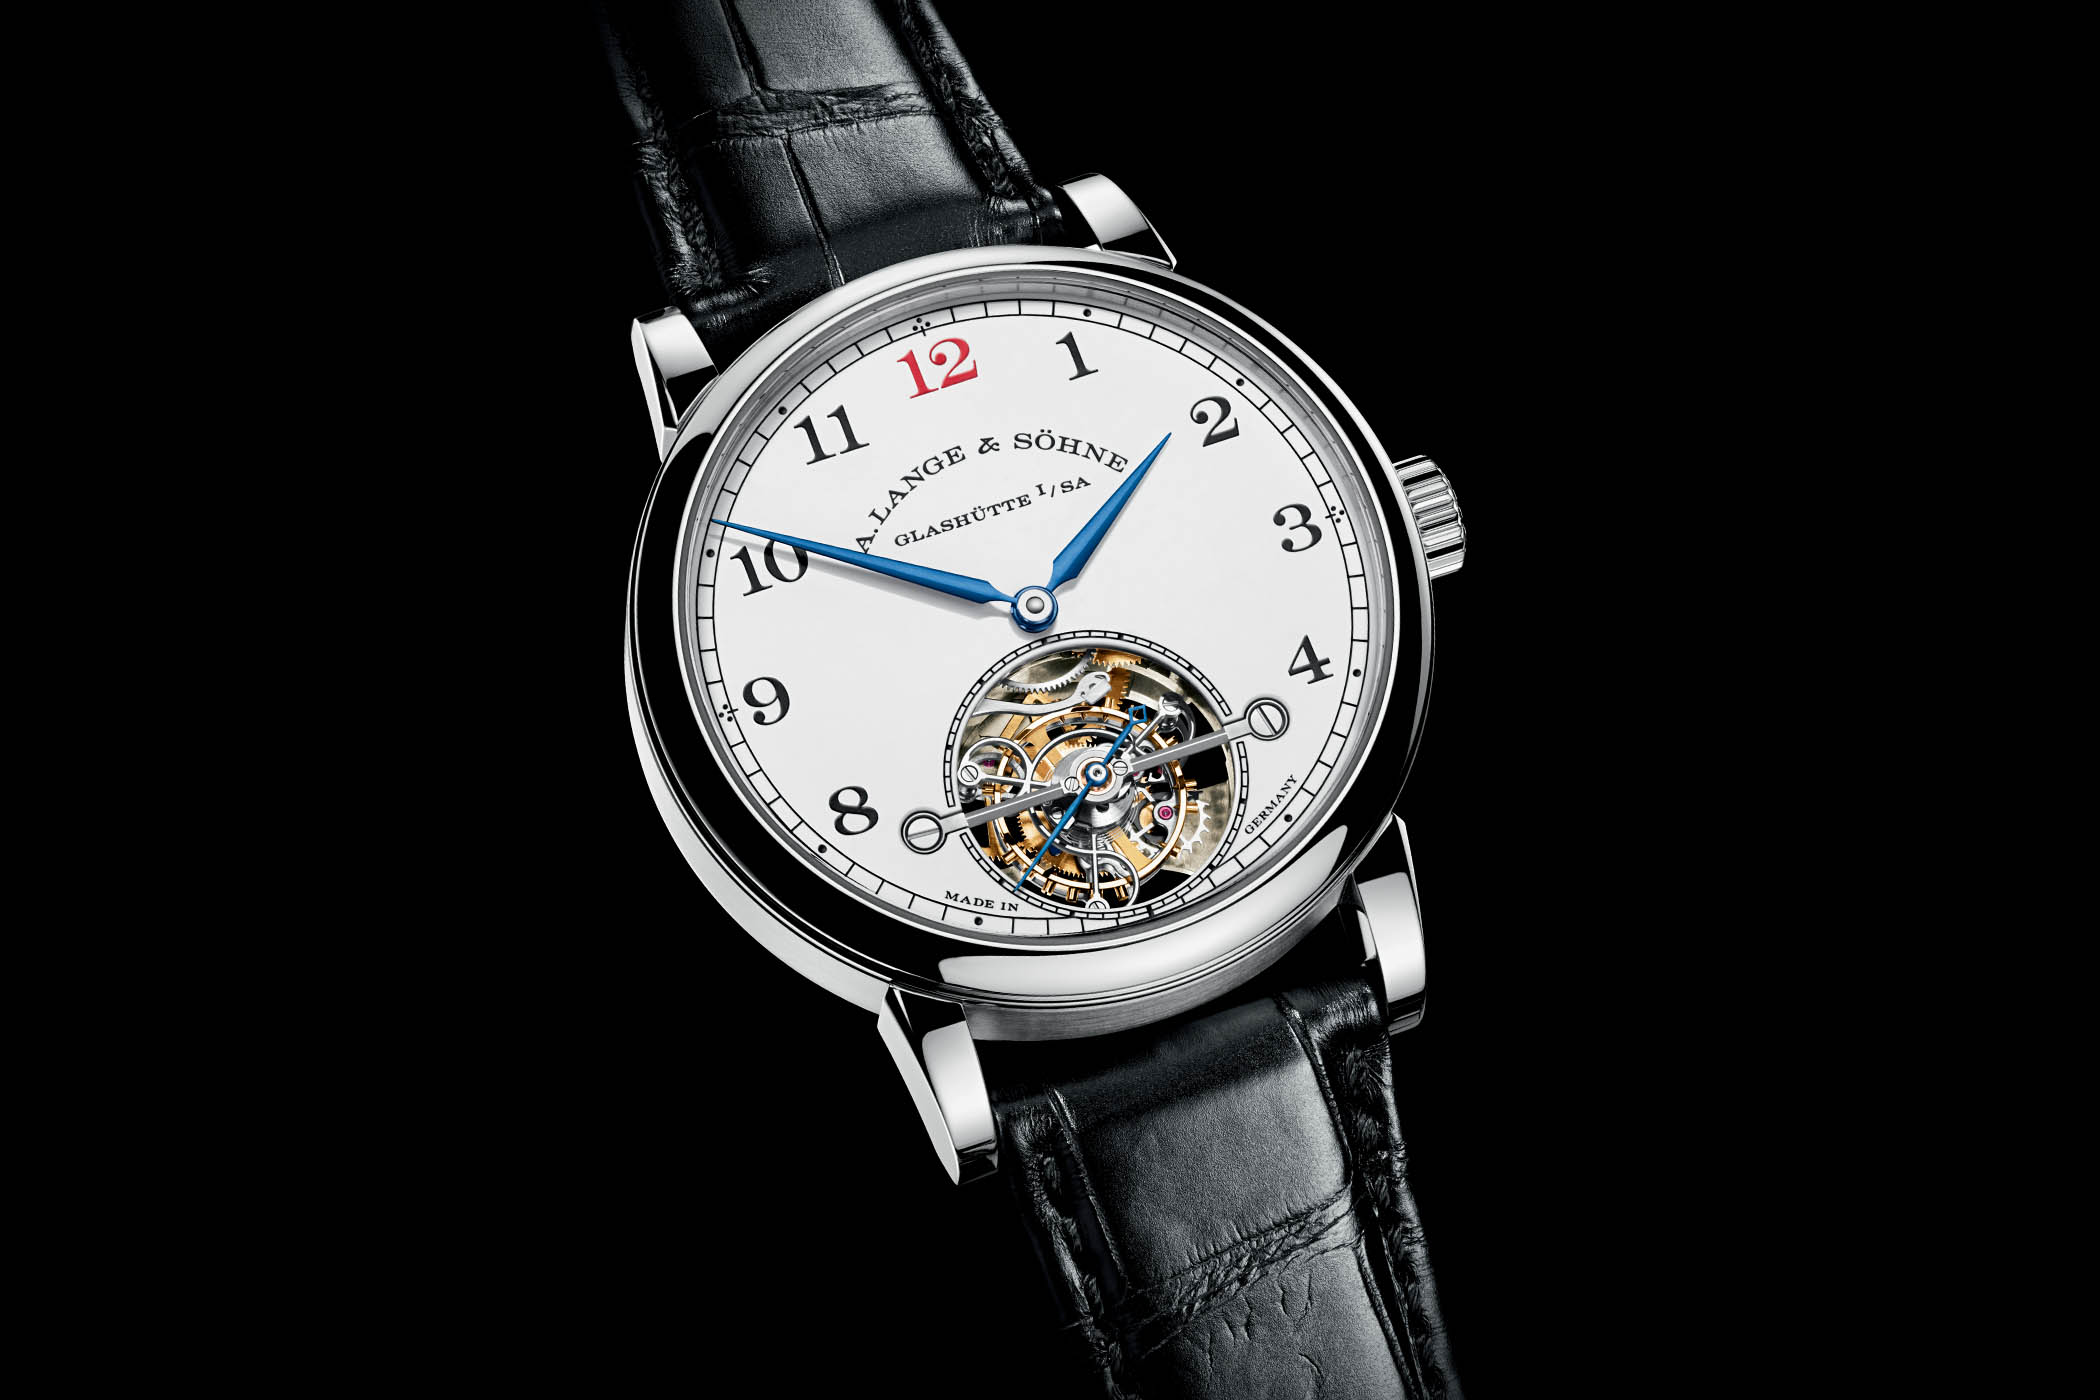 A. Lange & Söhne 1815 Tourbillon White Enamel Dial Platinum case limited edition 730.079F